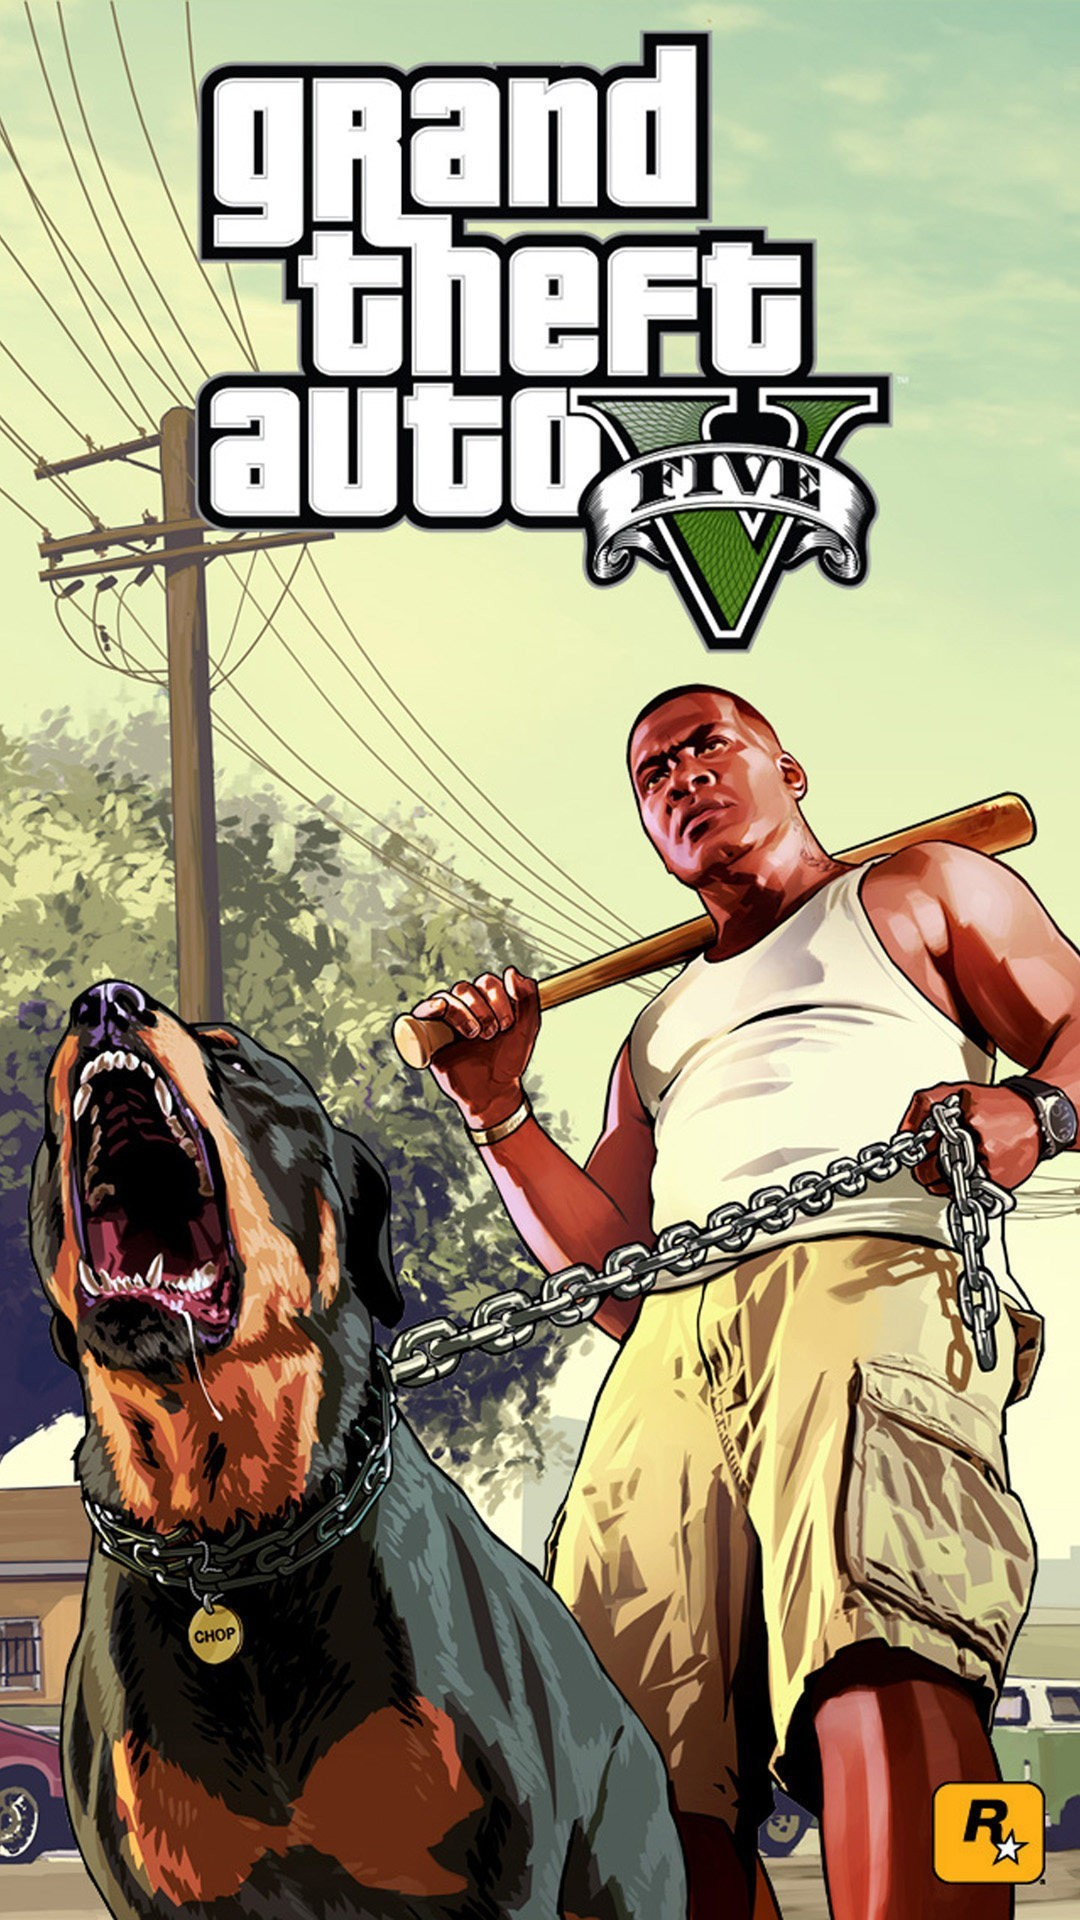 Gta v hd wallpapers for iphone 7 wallpapers trevor from gtav voltagebd Images